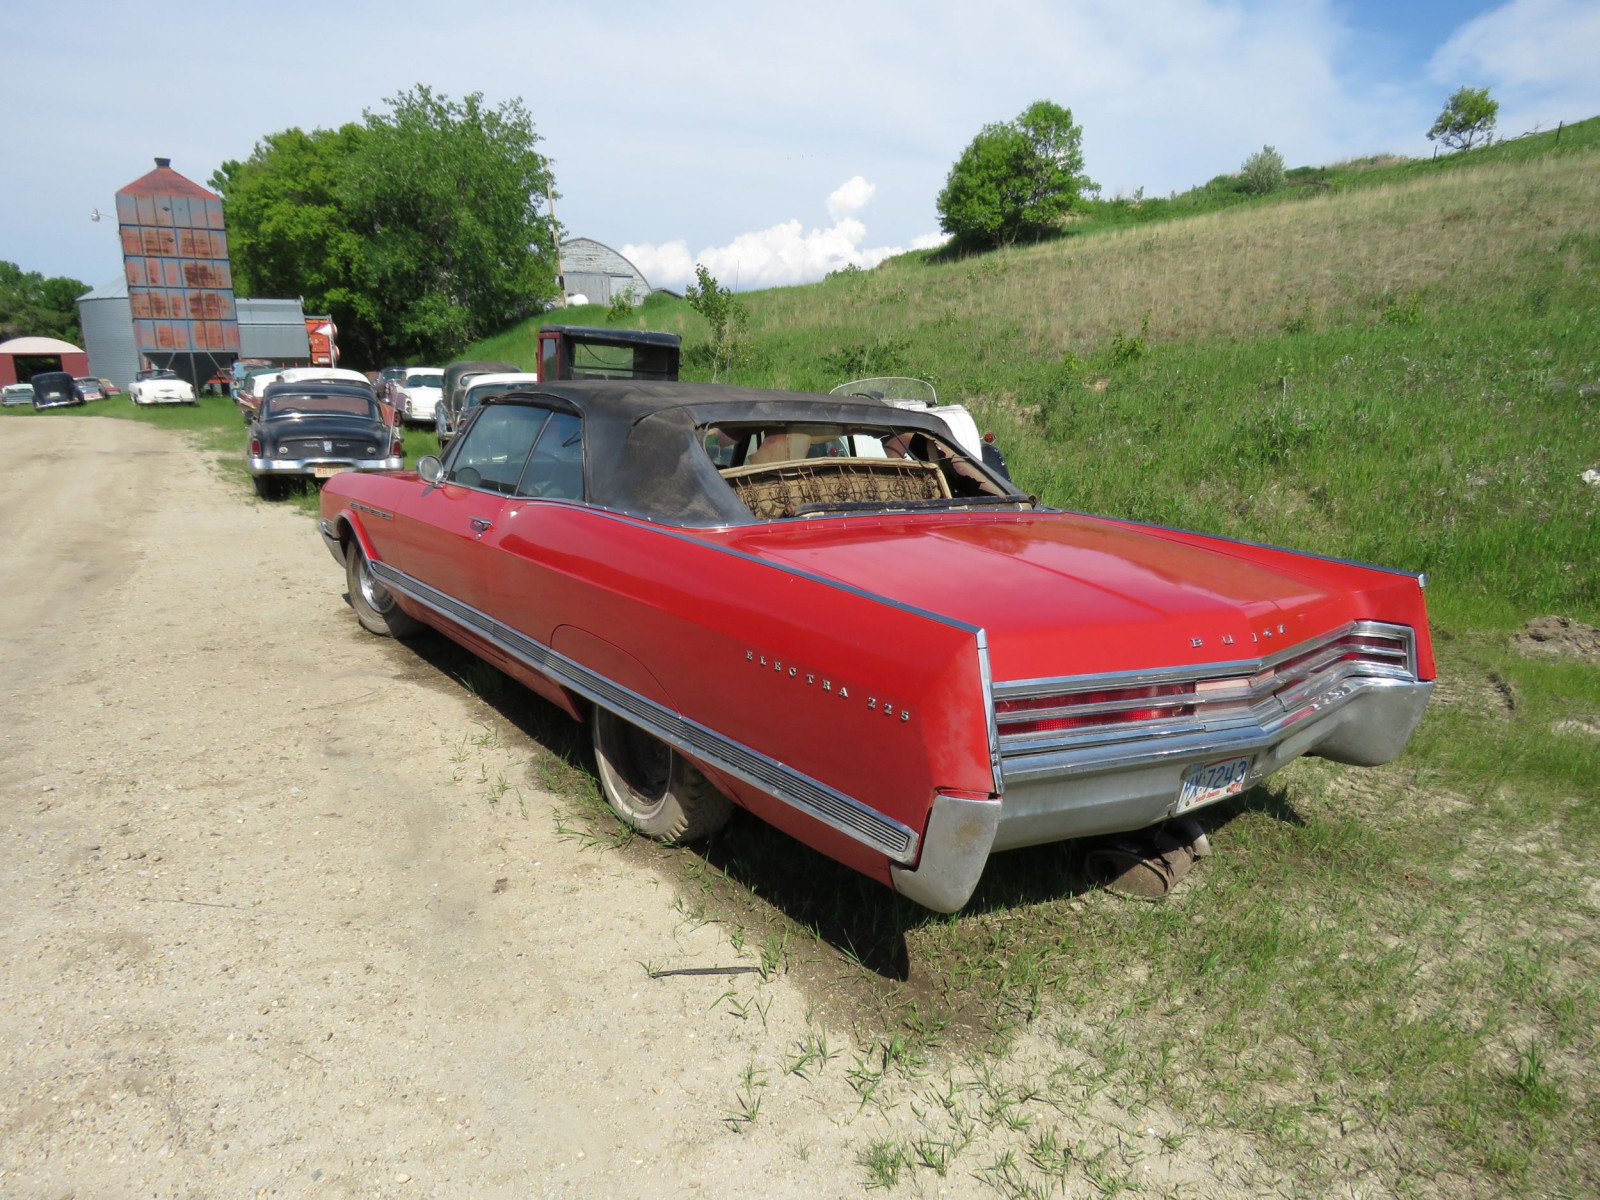 1965 Buick Electra 225 Convertible 484675H286474 - Image 7